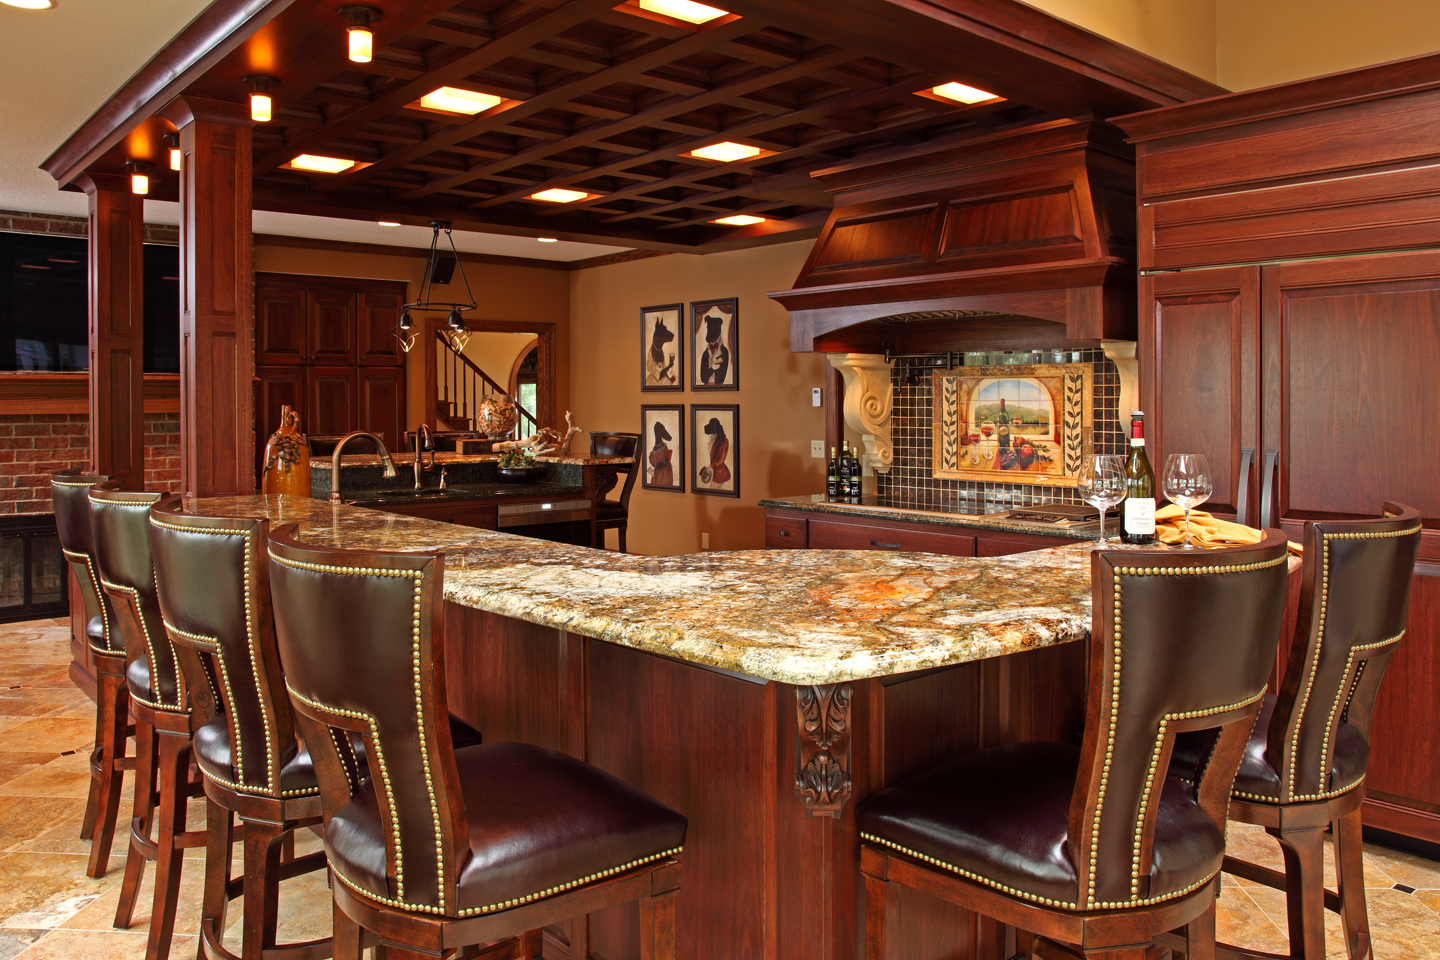 murphy bros takes coty award for eden prairie kitchen murphy kitchen table upscale kitchen remodeling photo